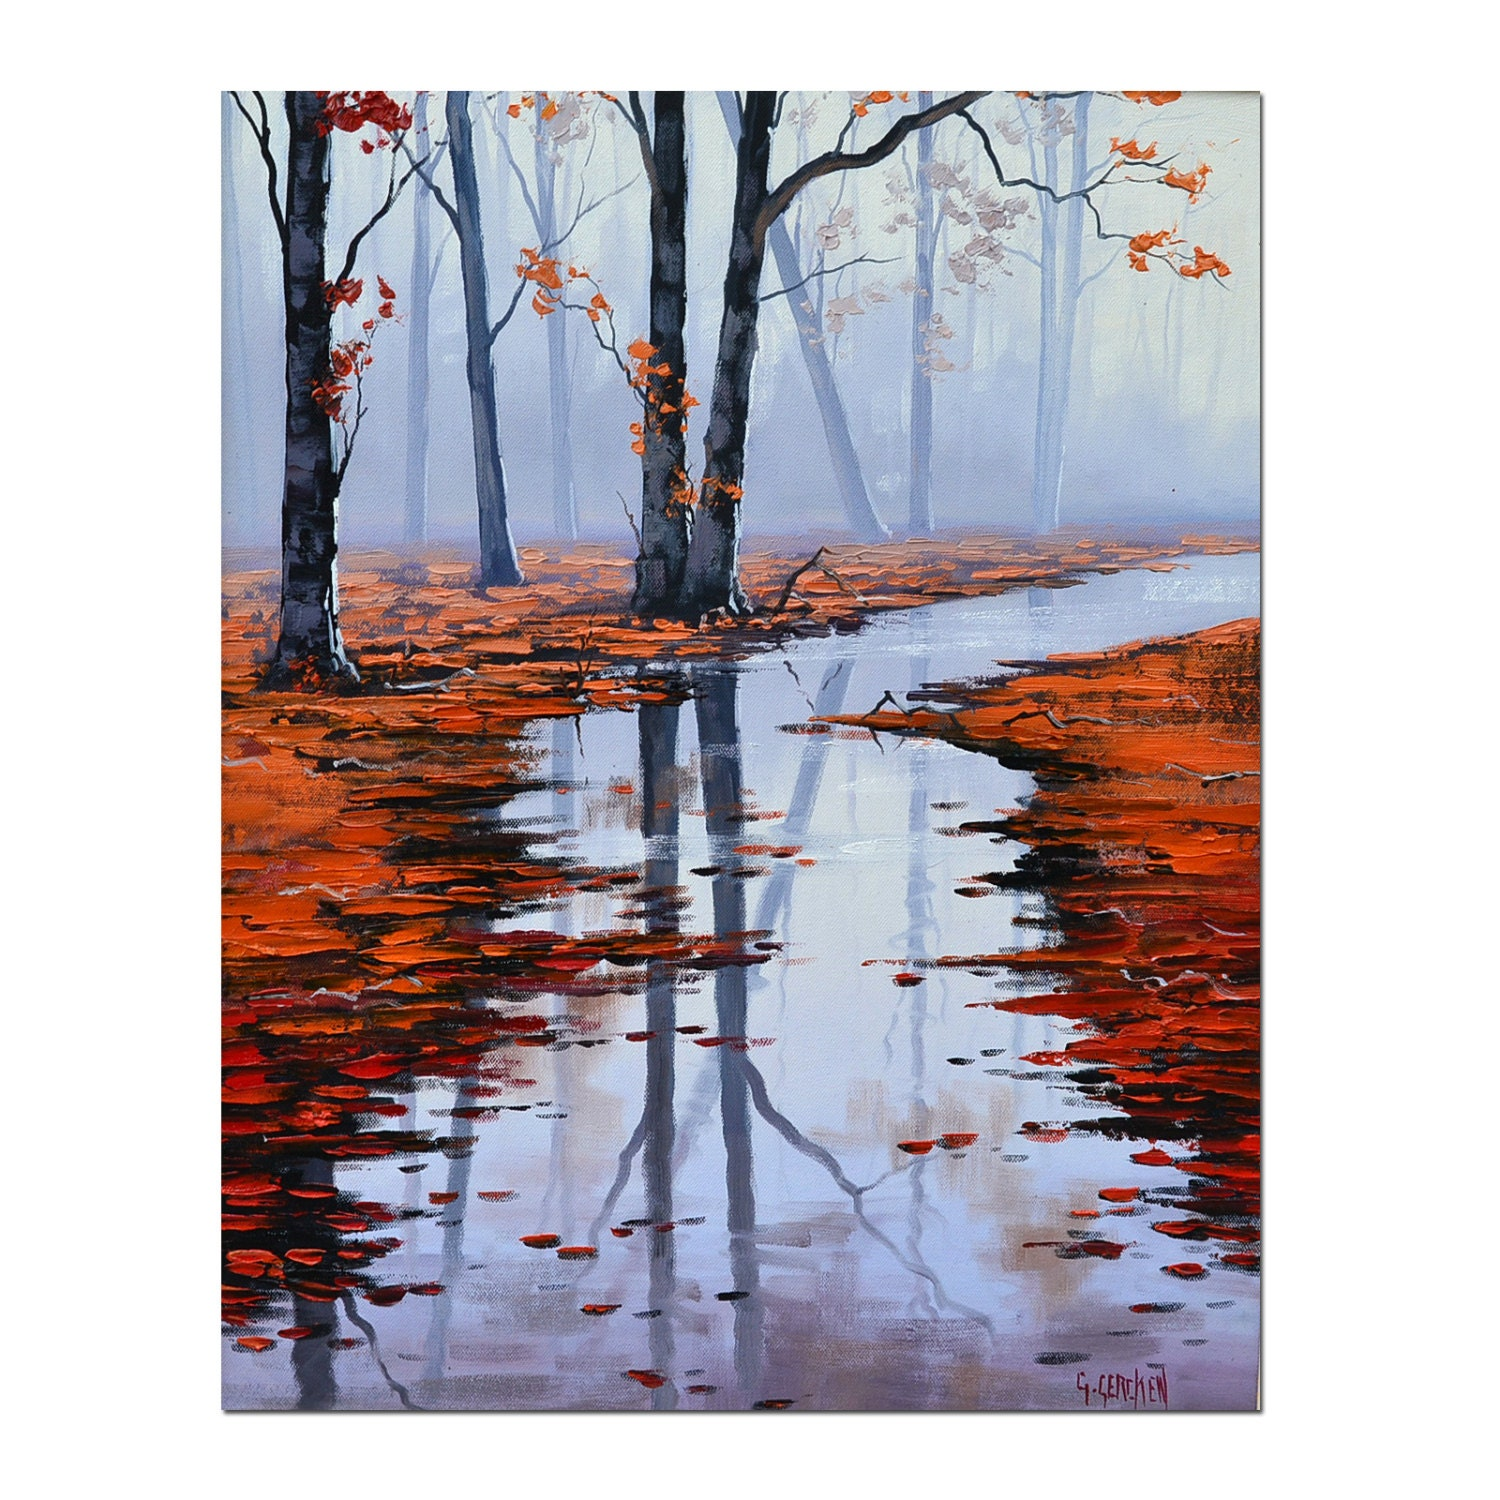 20 x 16 AUTUMN PAINTING vertical landscape red brown leaves